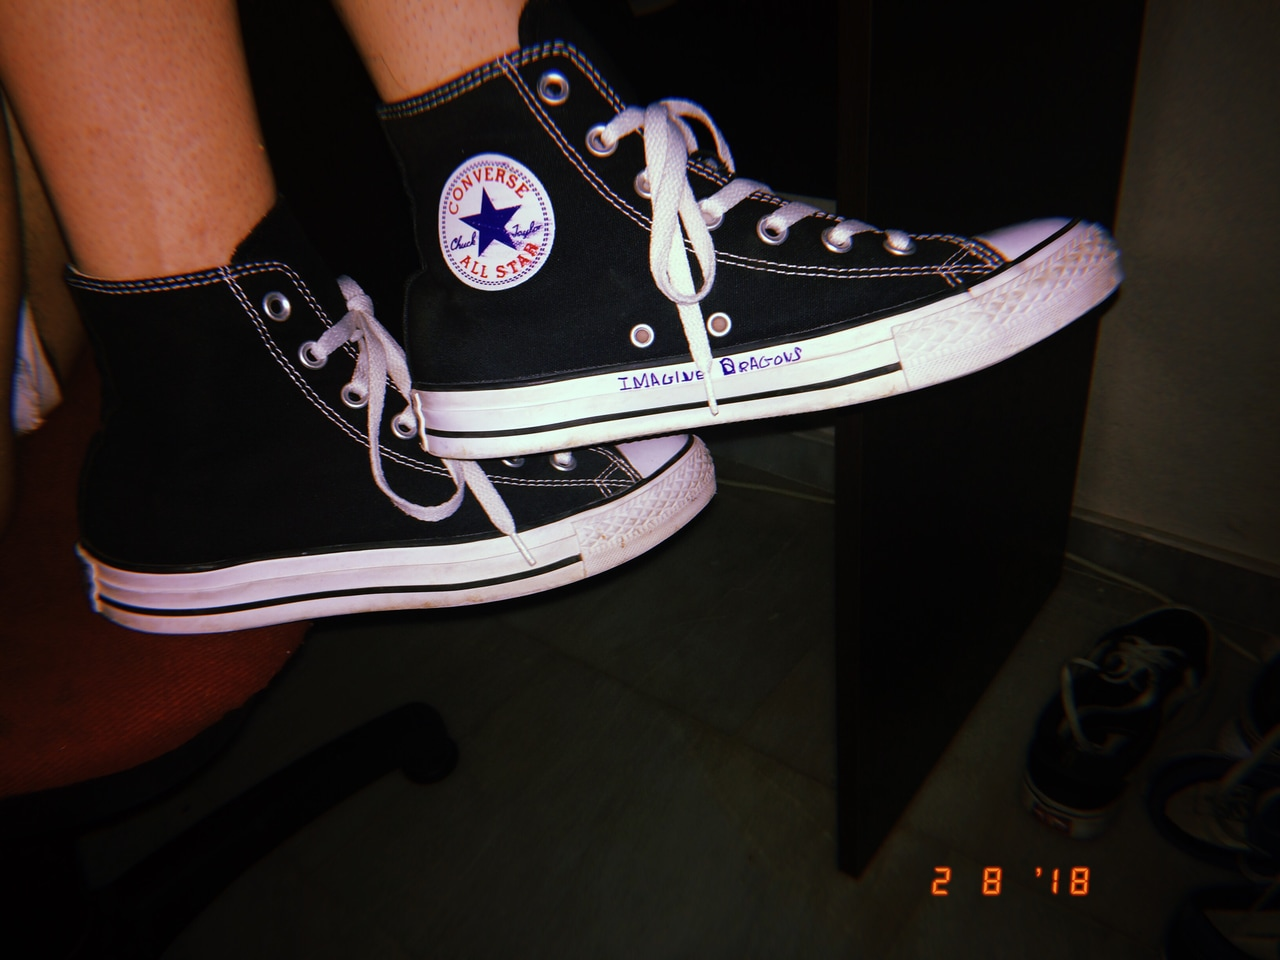 all star, aesthetic, nirvana , image 6098473 on Favim.com